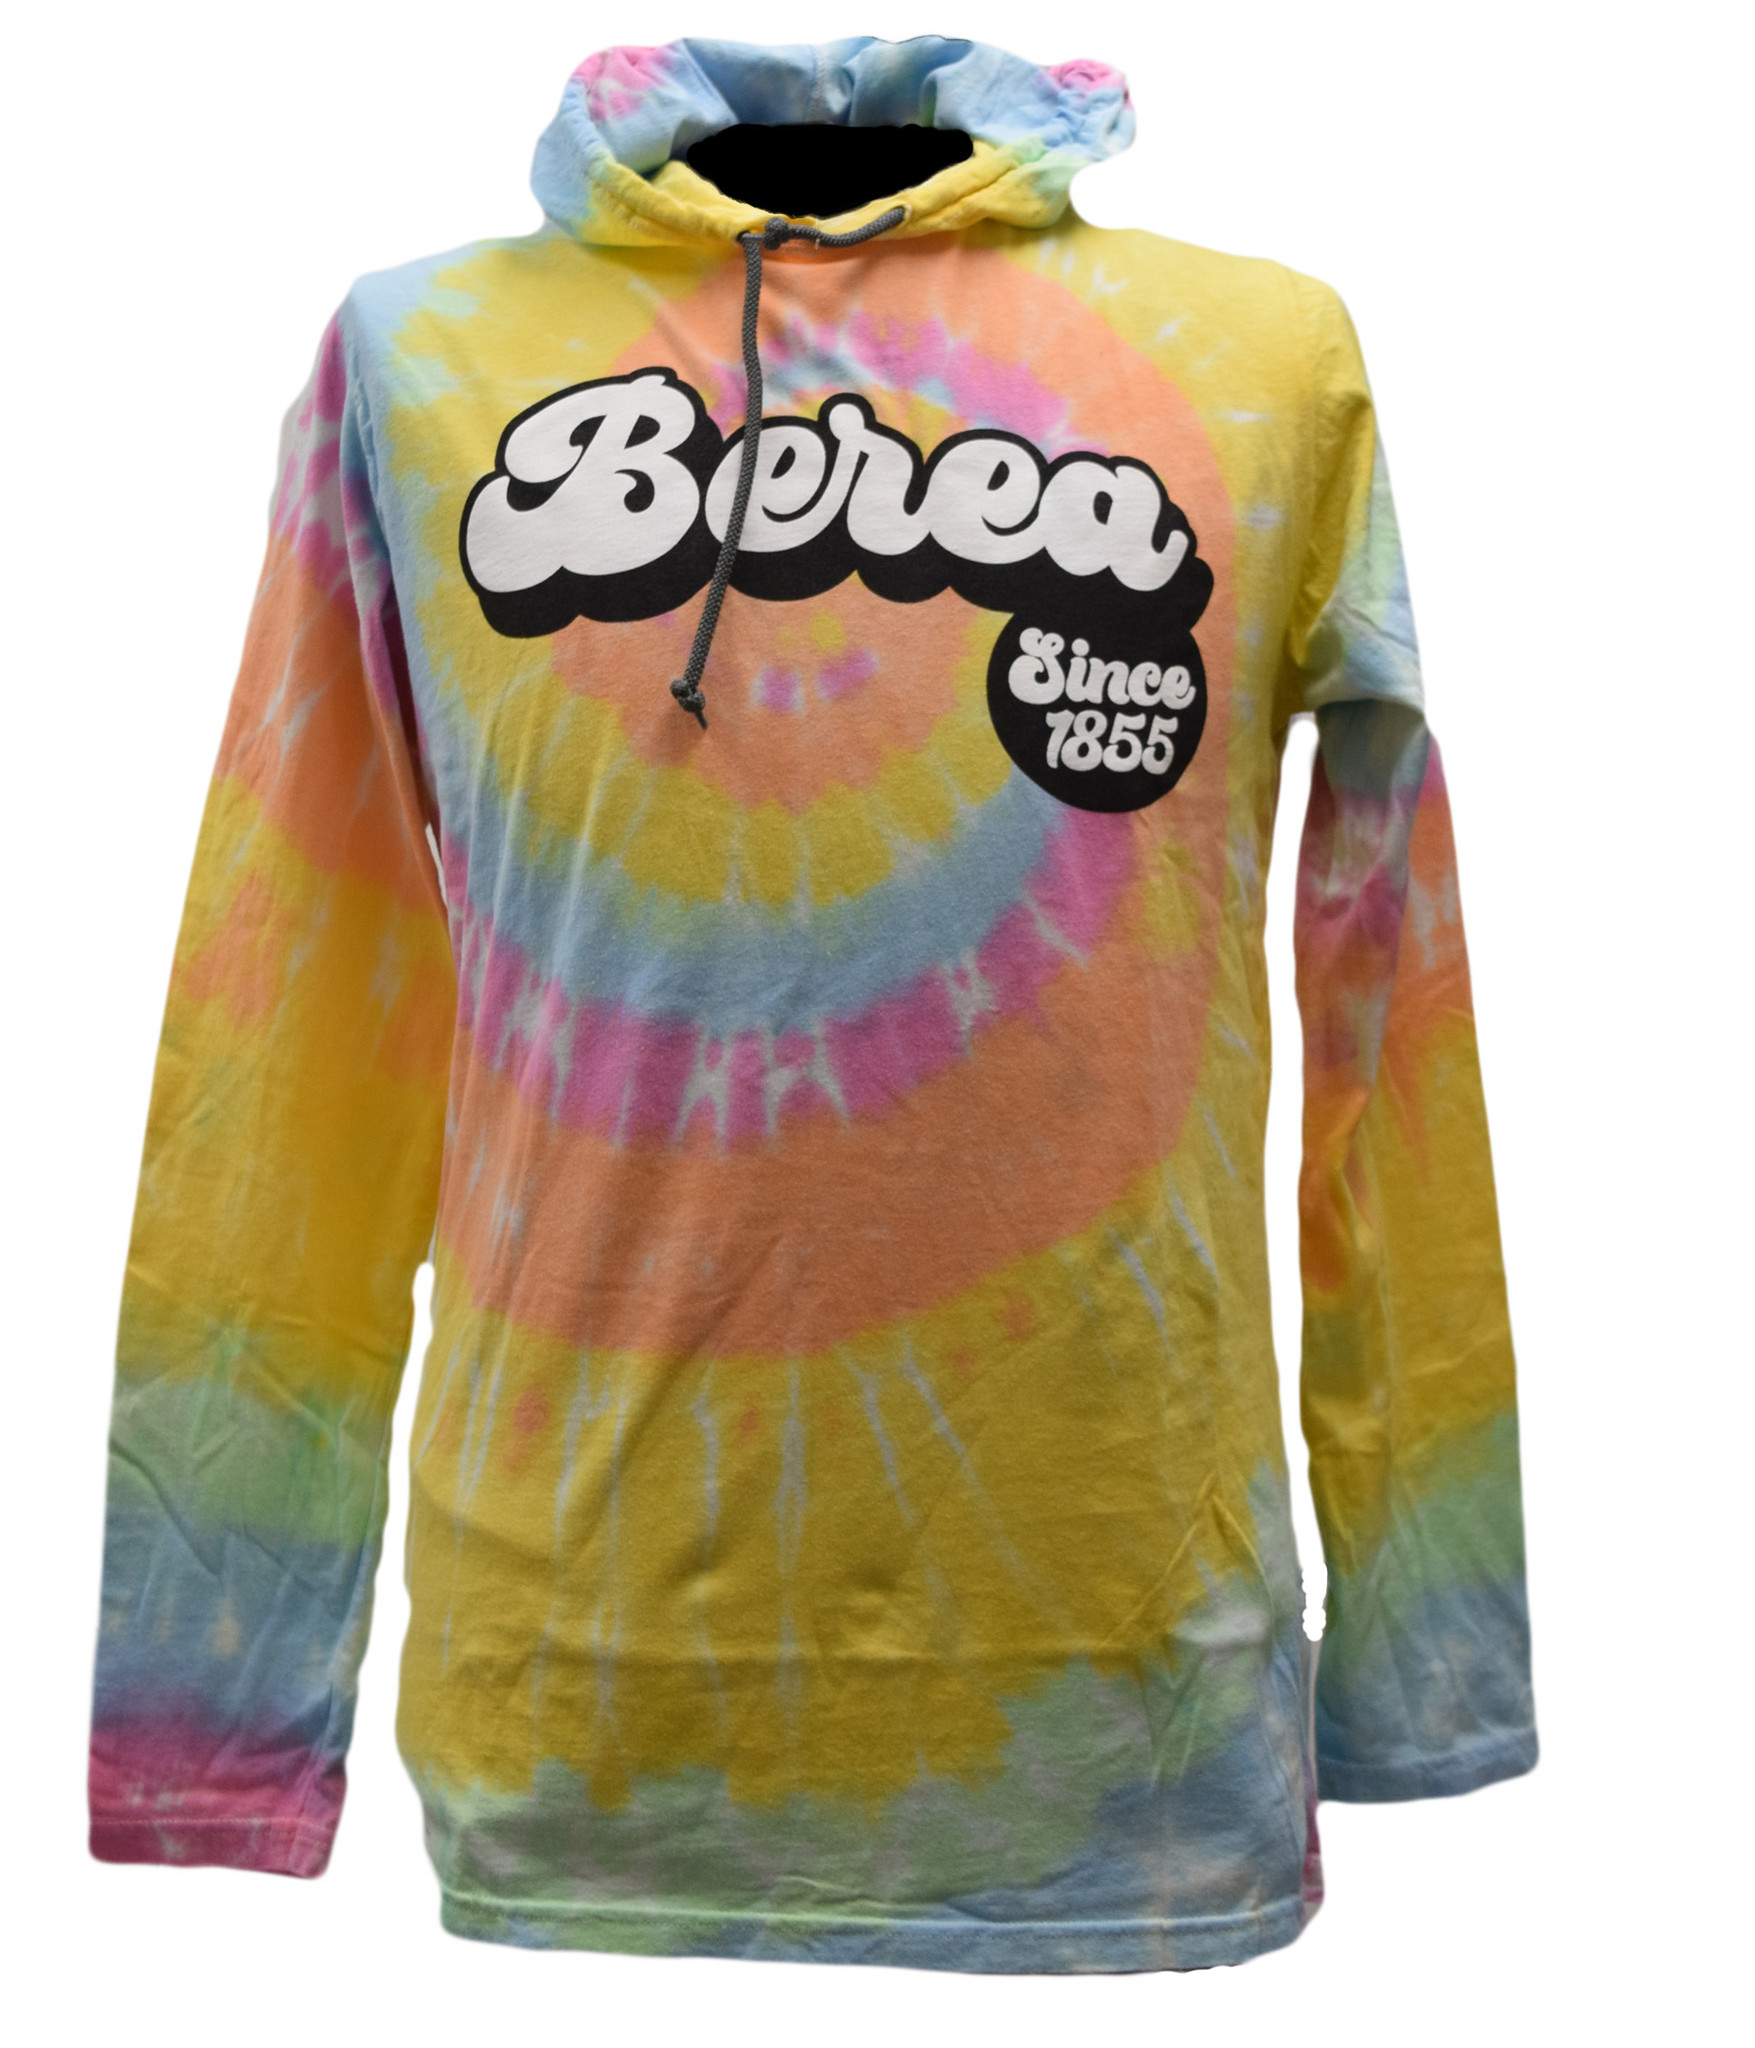 Berea Since 1855 Aerial Hooded T-shirt-1